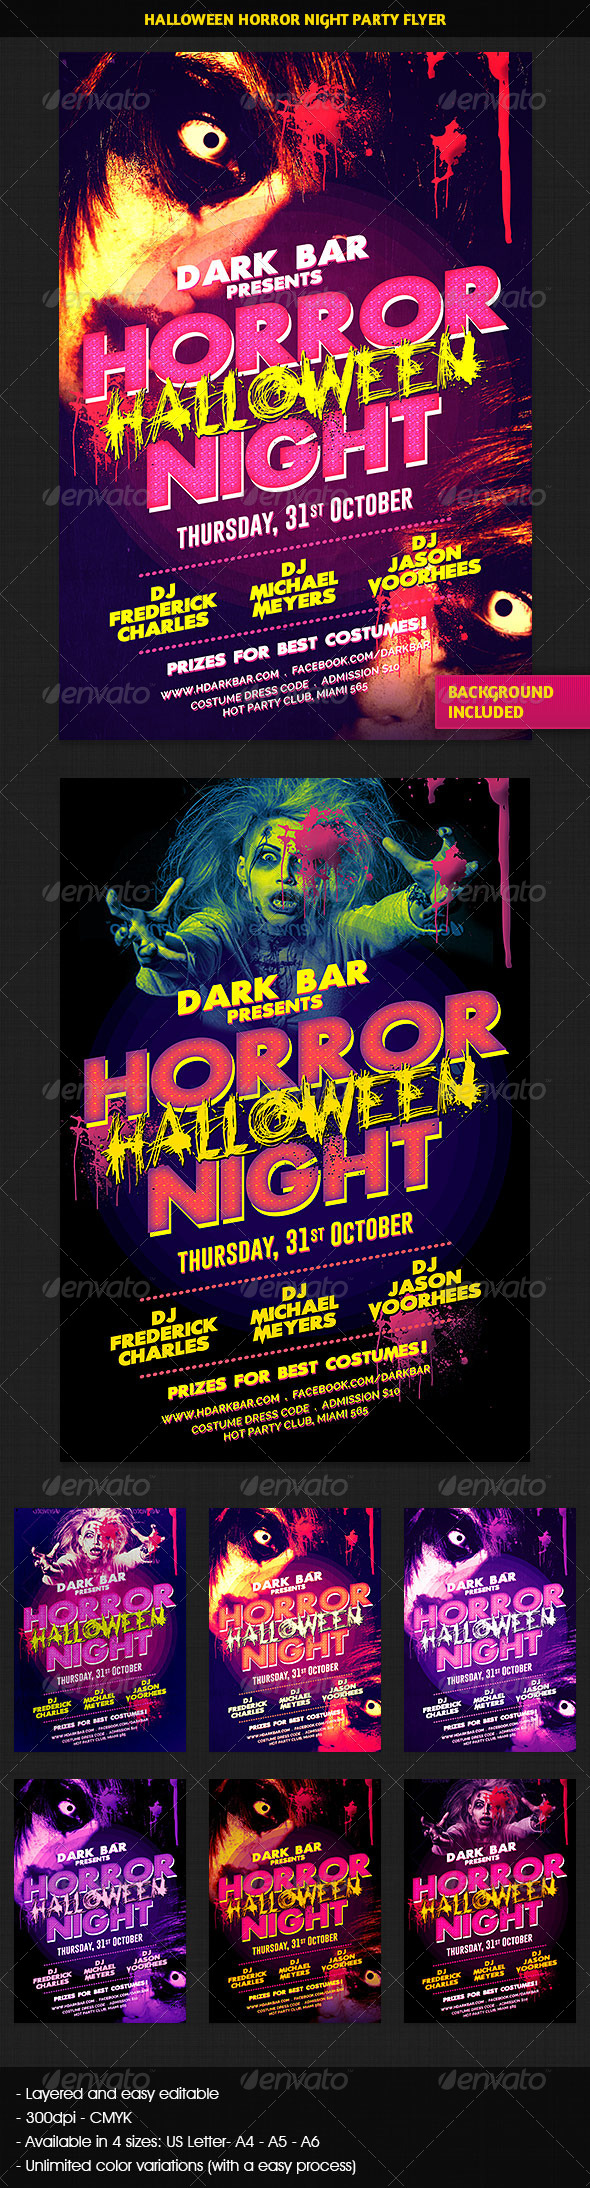 GraphicRiver Halloween Horror Night Party Flyer 5683334